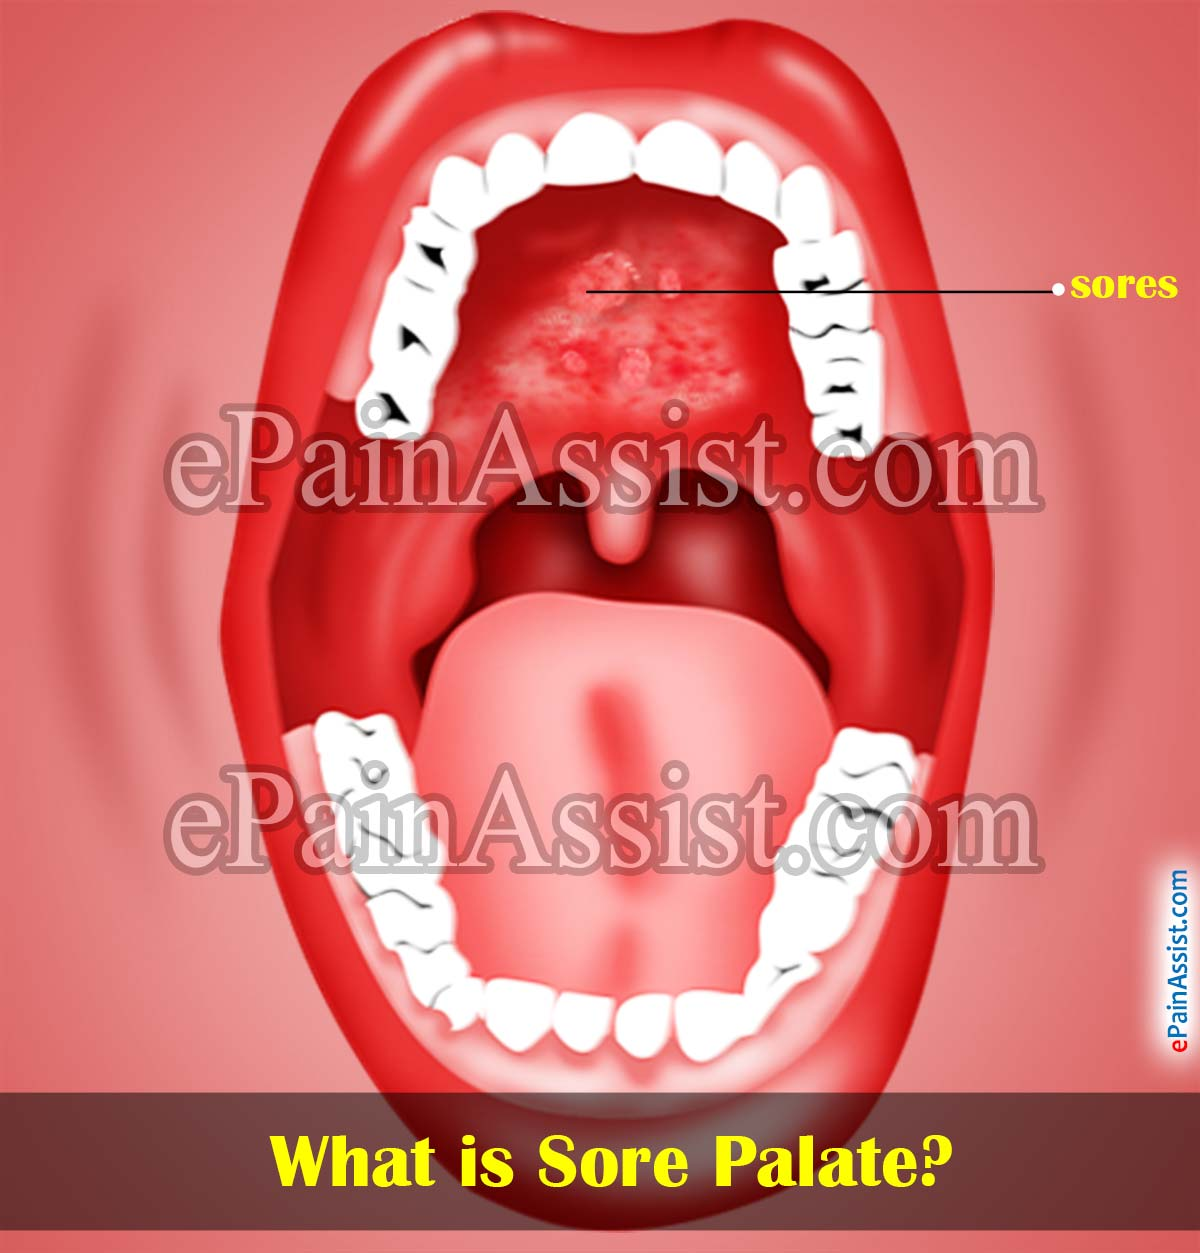 What is Sore Palate or Sores on Roof of Mouth